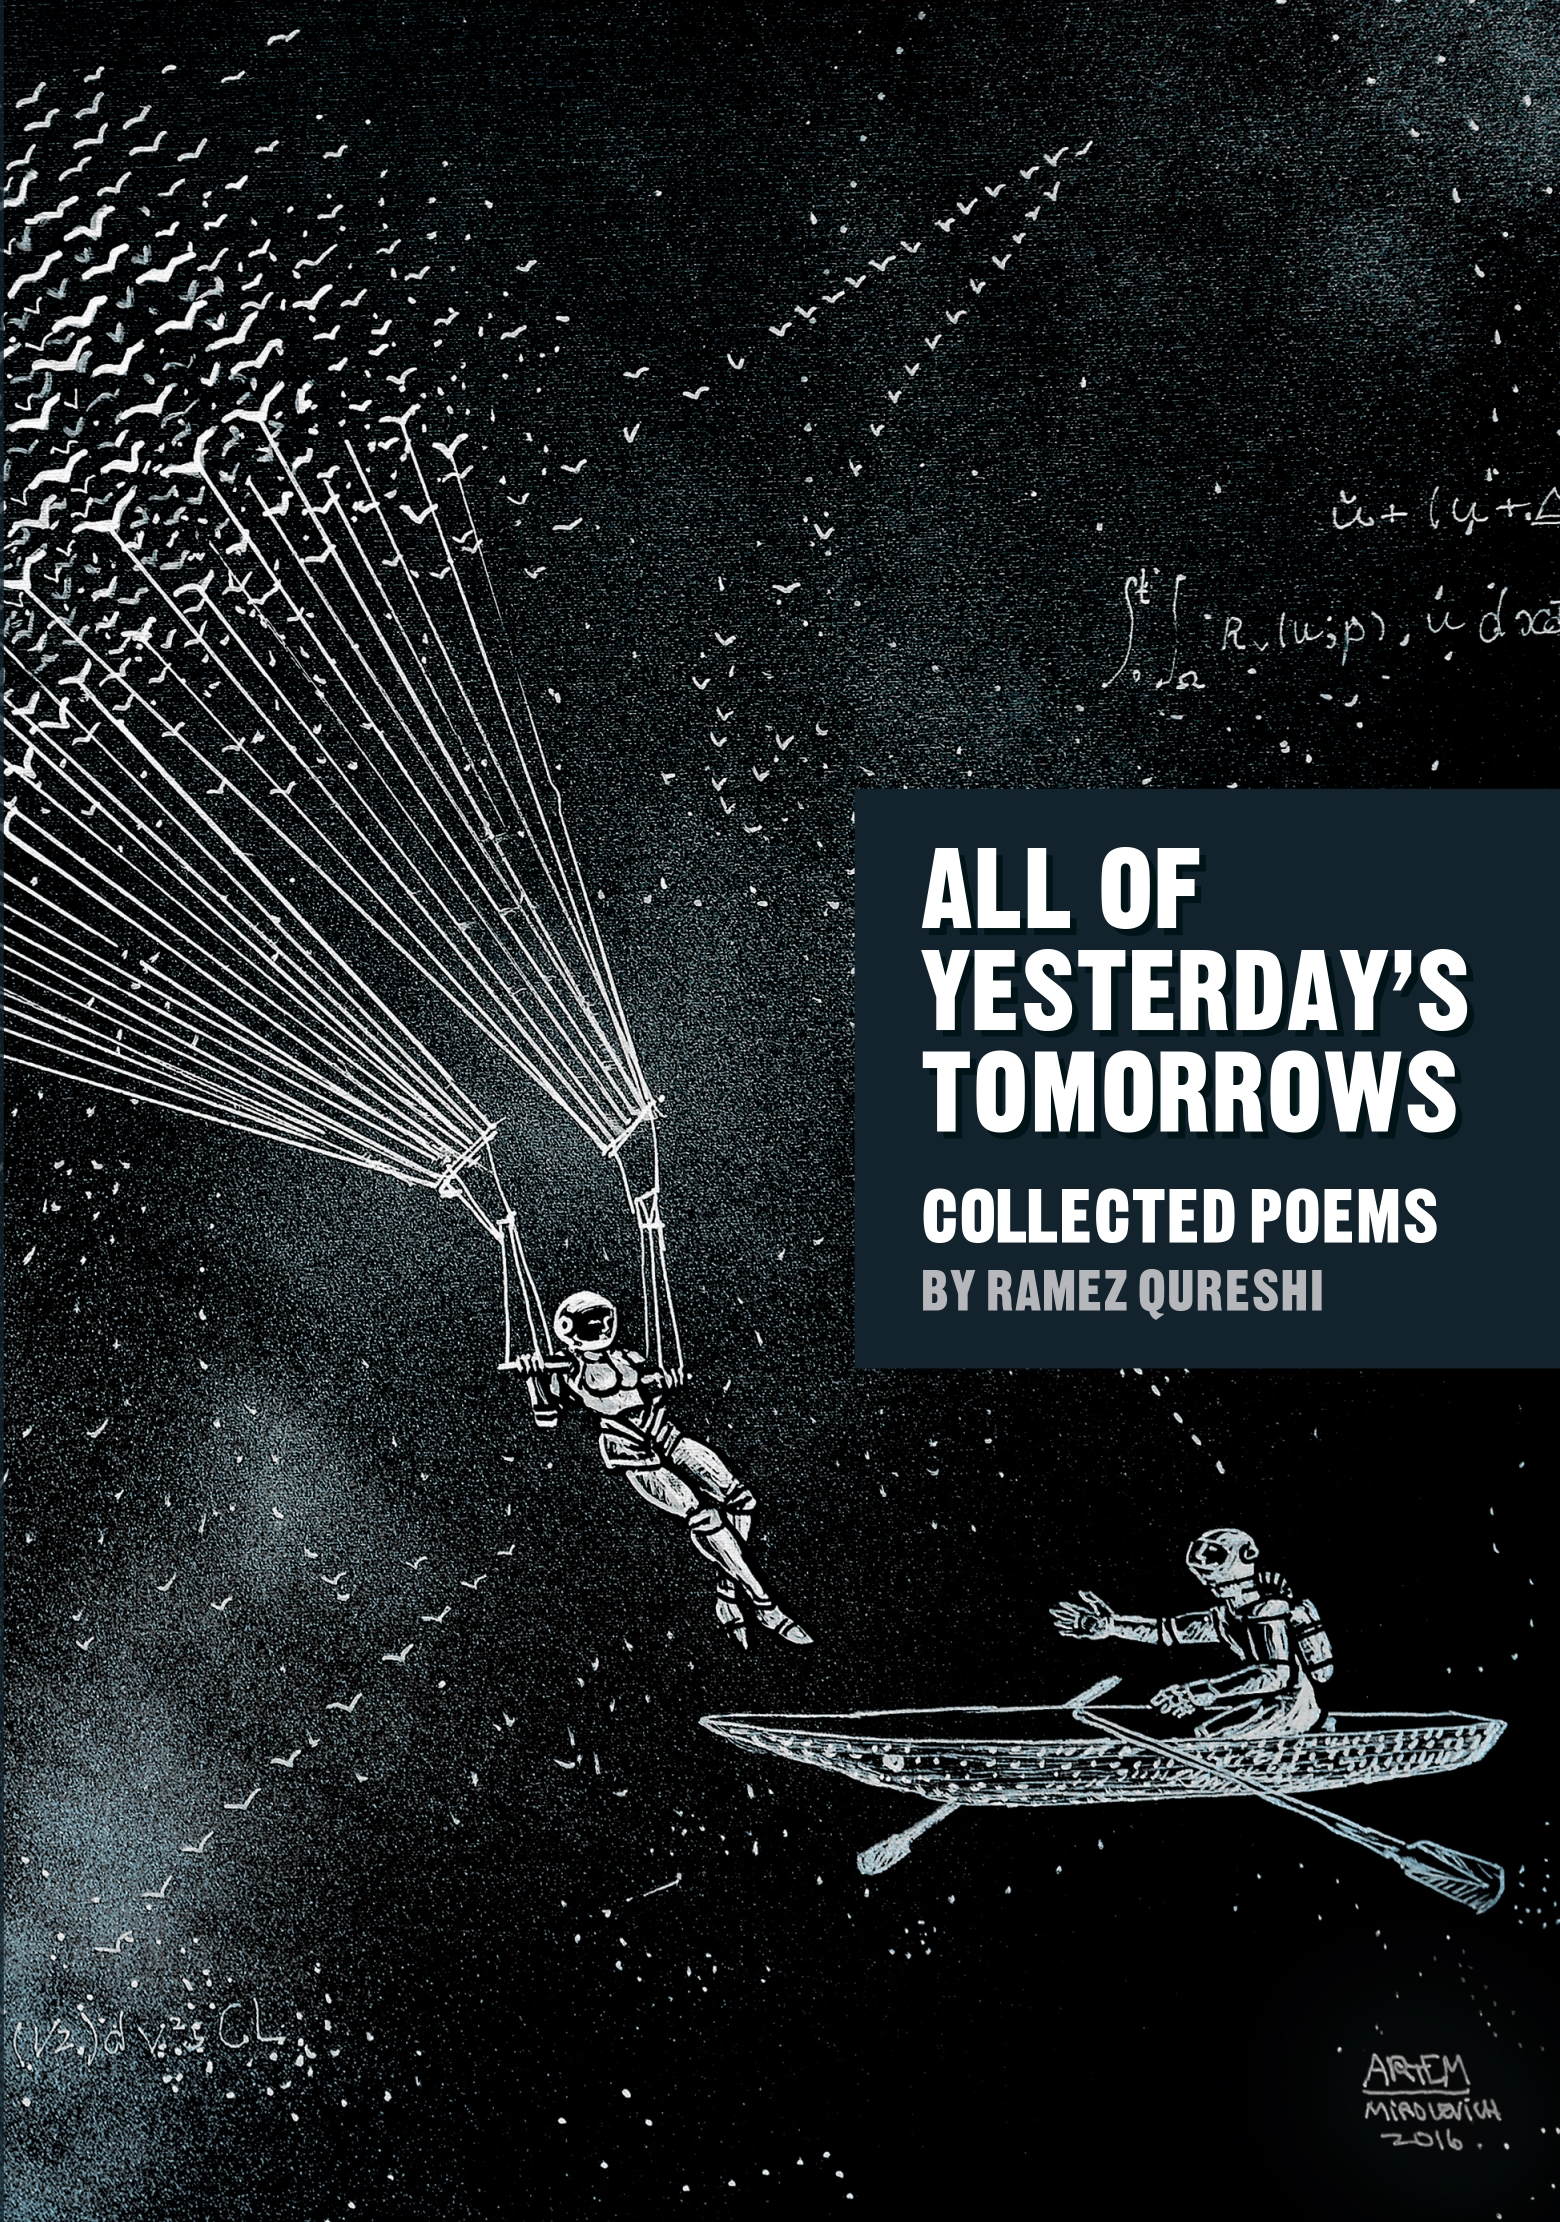 All of Yesterday's Tomorrows by Ramez Qureshi